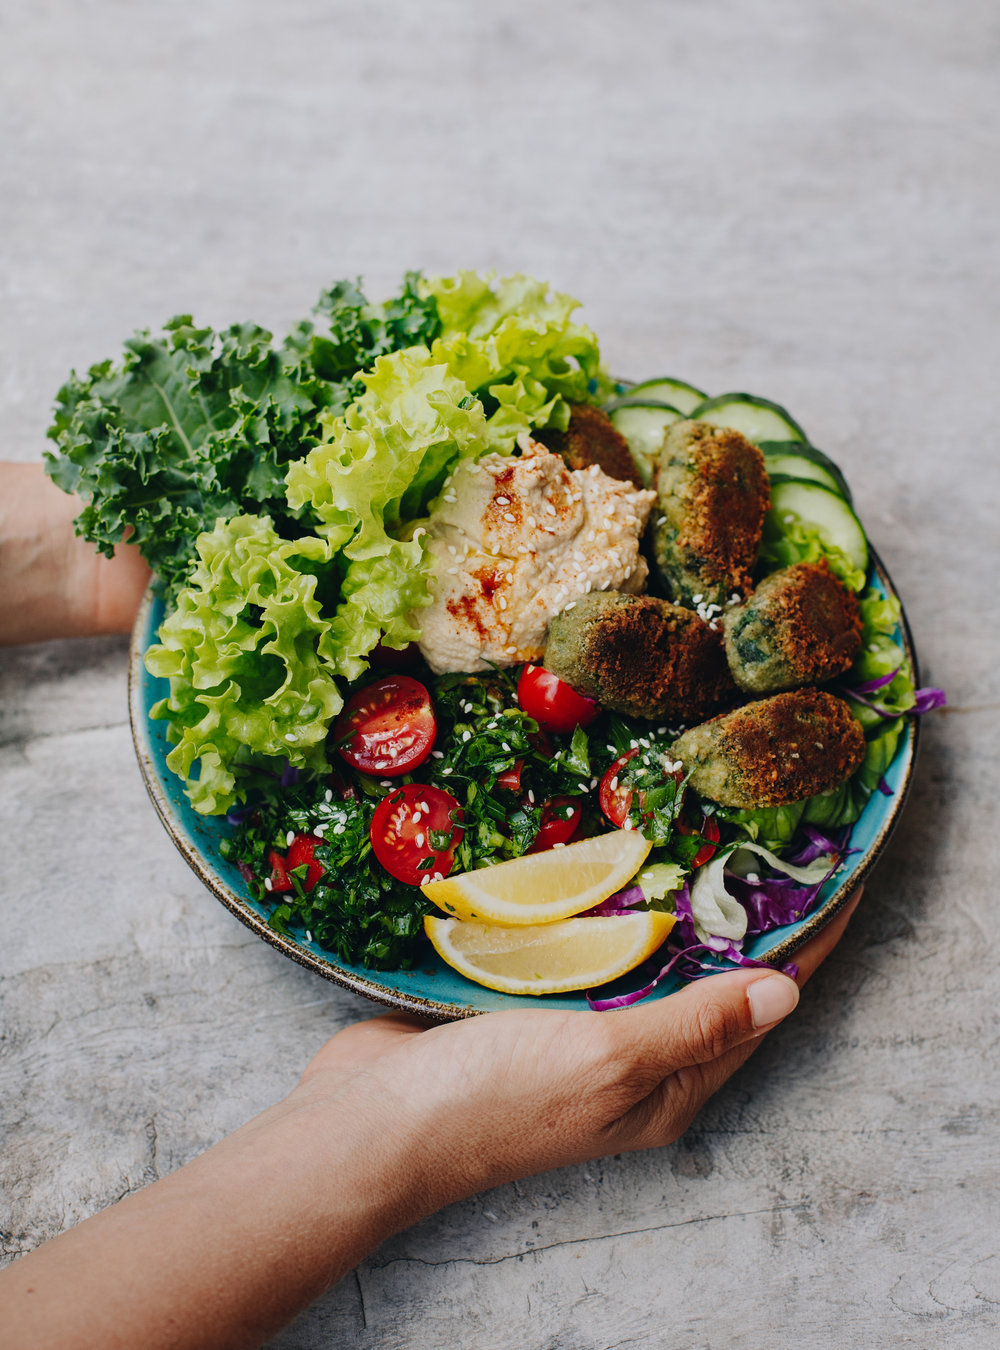 green-falafel-kale-vegan-bowl-recipe.jpg